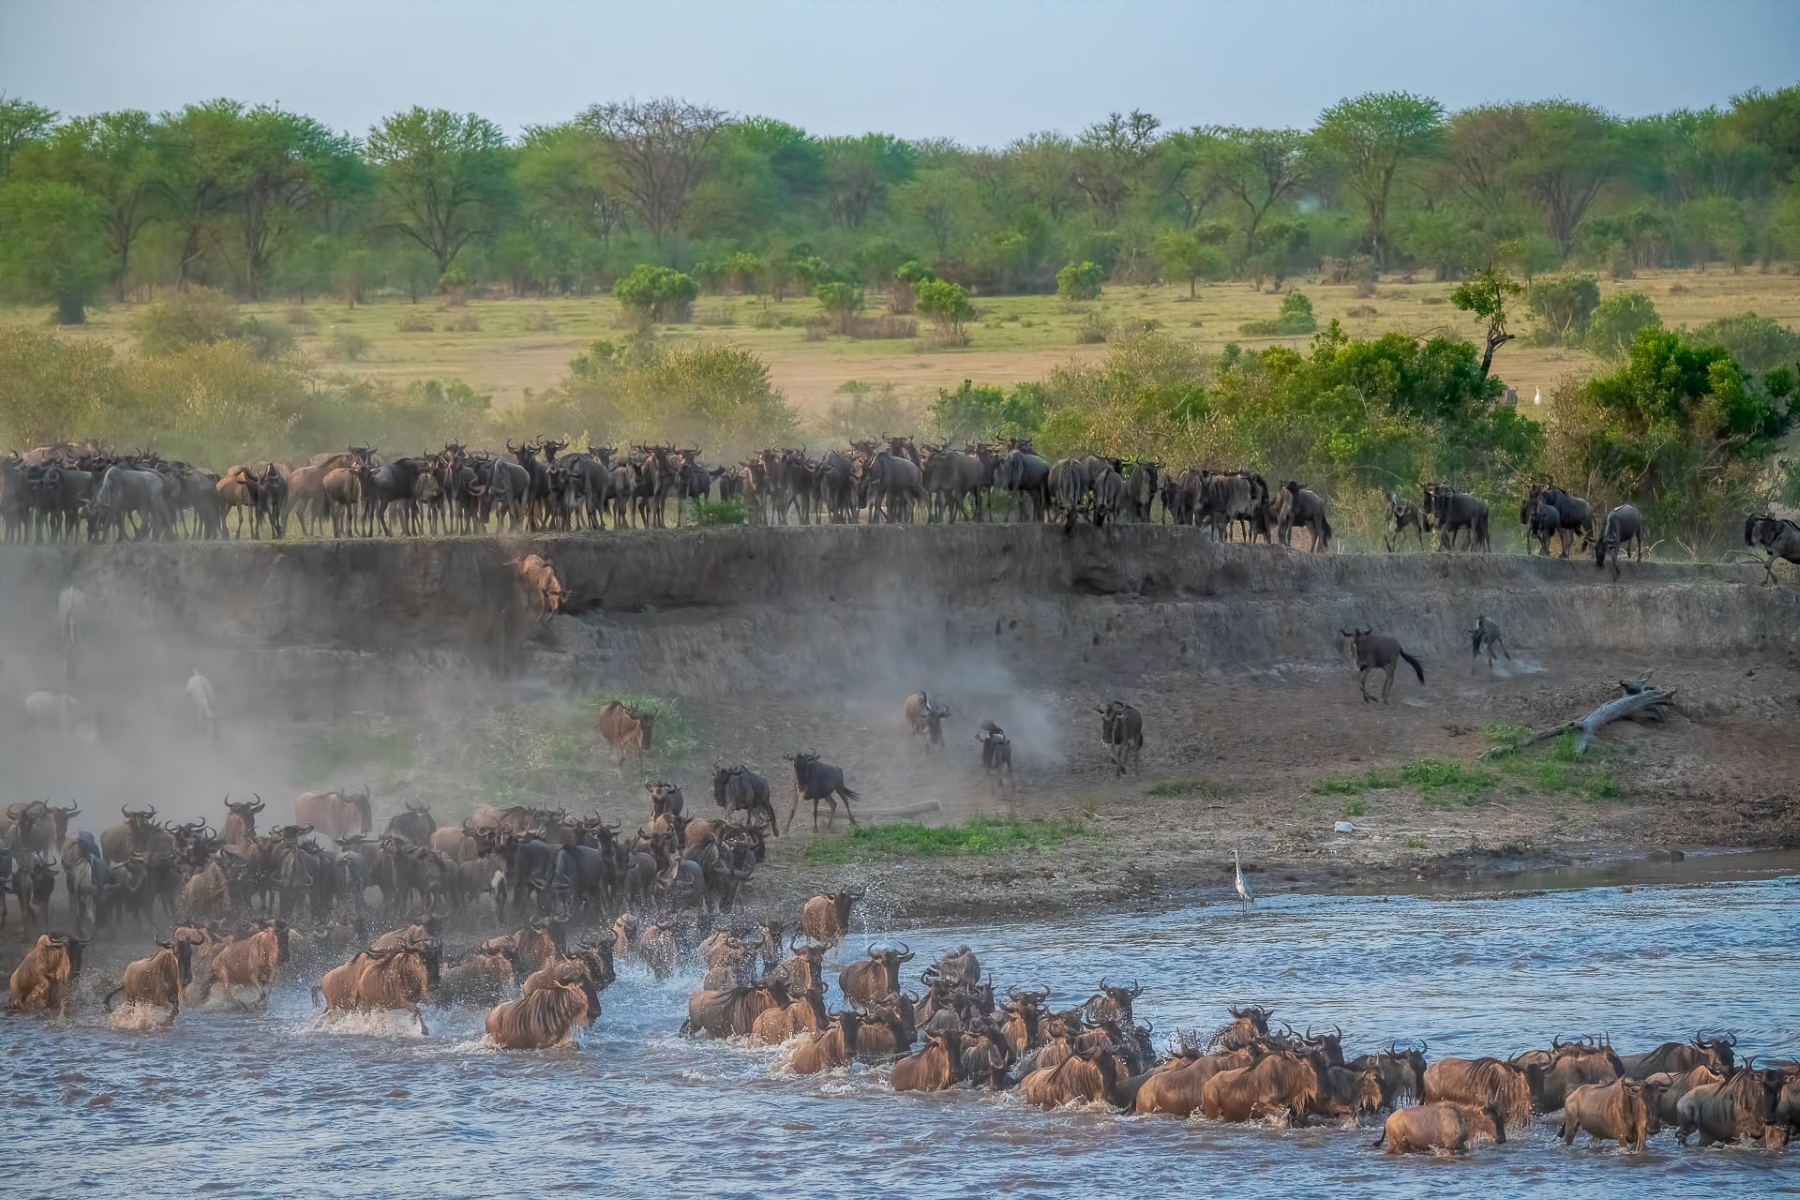 Wildebeest-gather-on-one-bank-of-the-Mara-River-until-a-few-start-the-rush-en-mass-NA-0-Place-by-Lynn-Oakleaf-DV